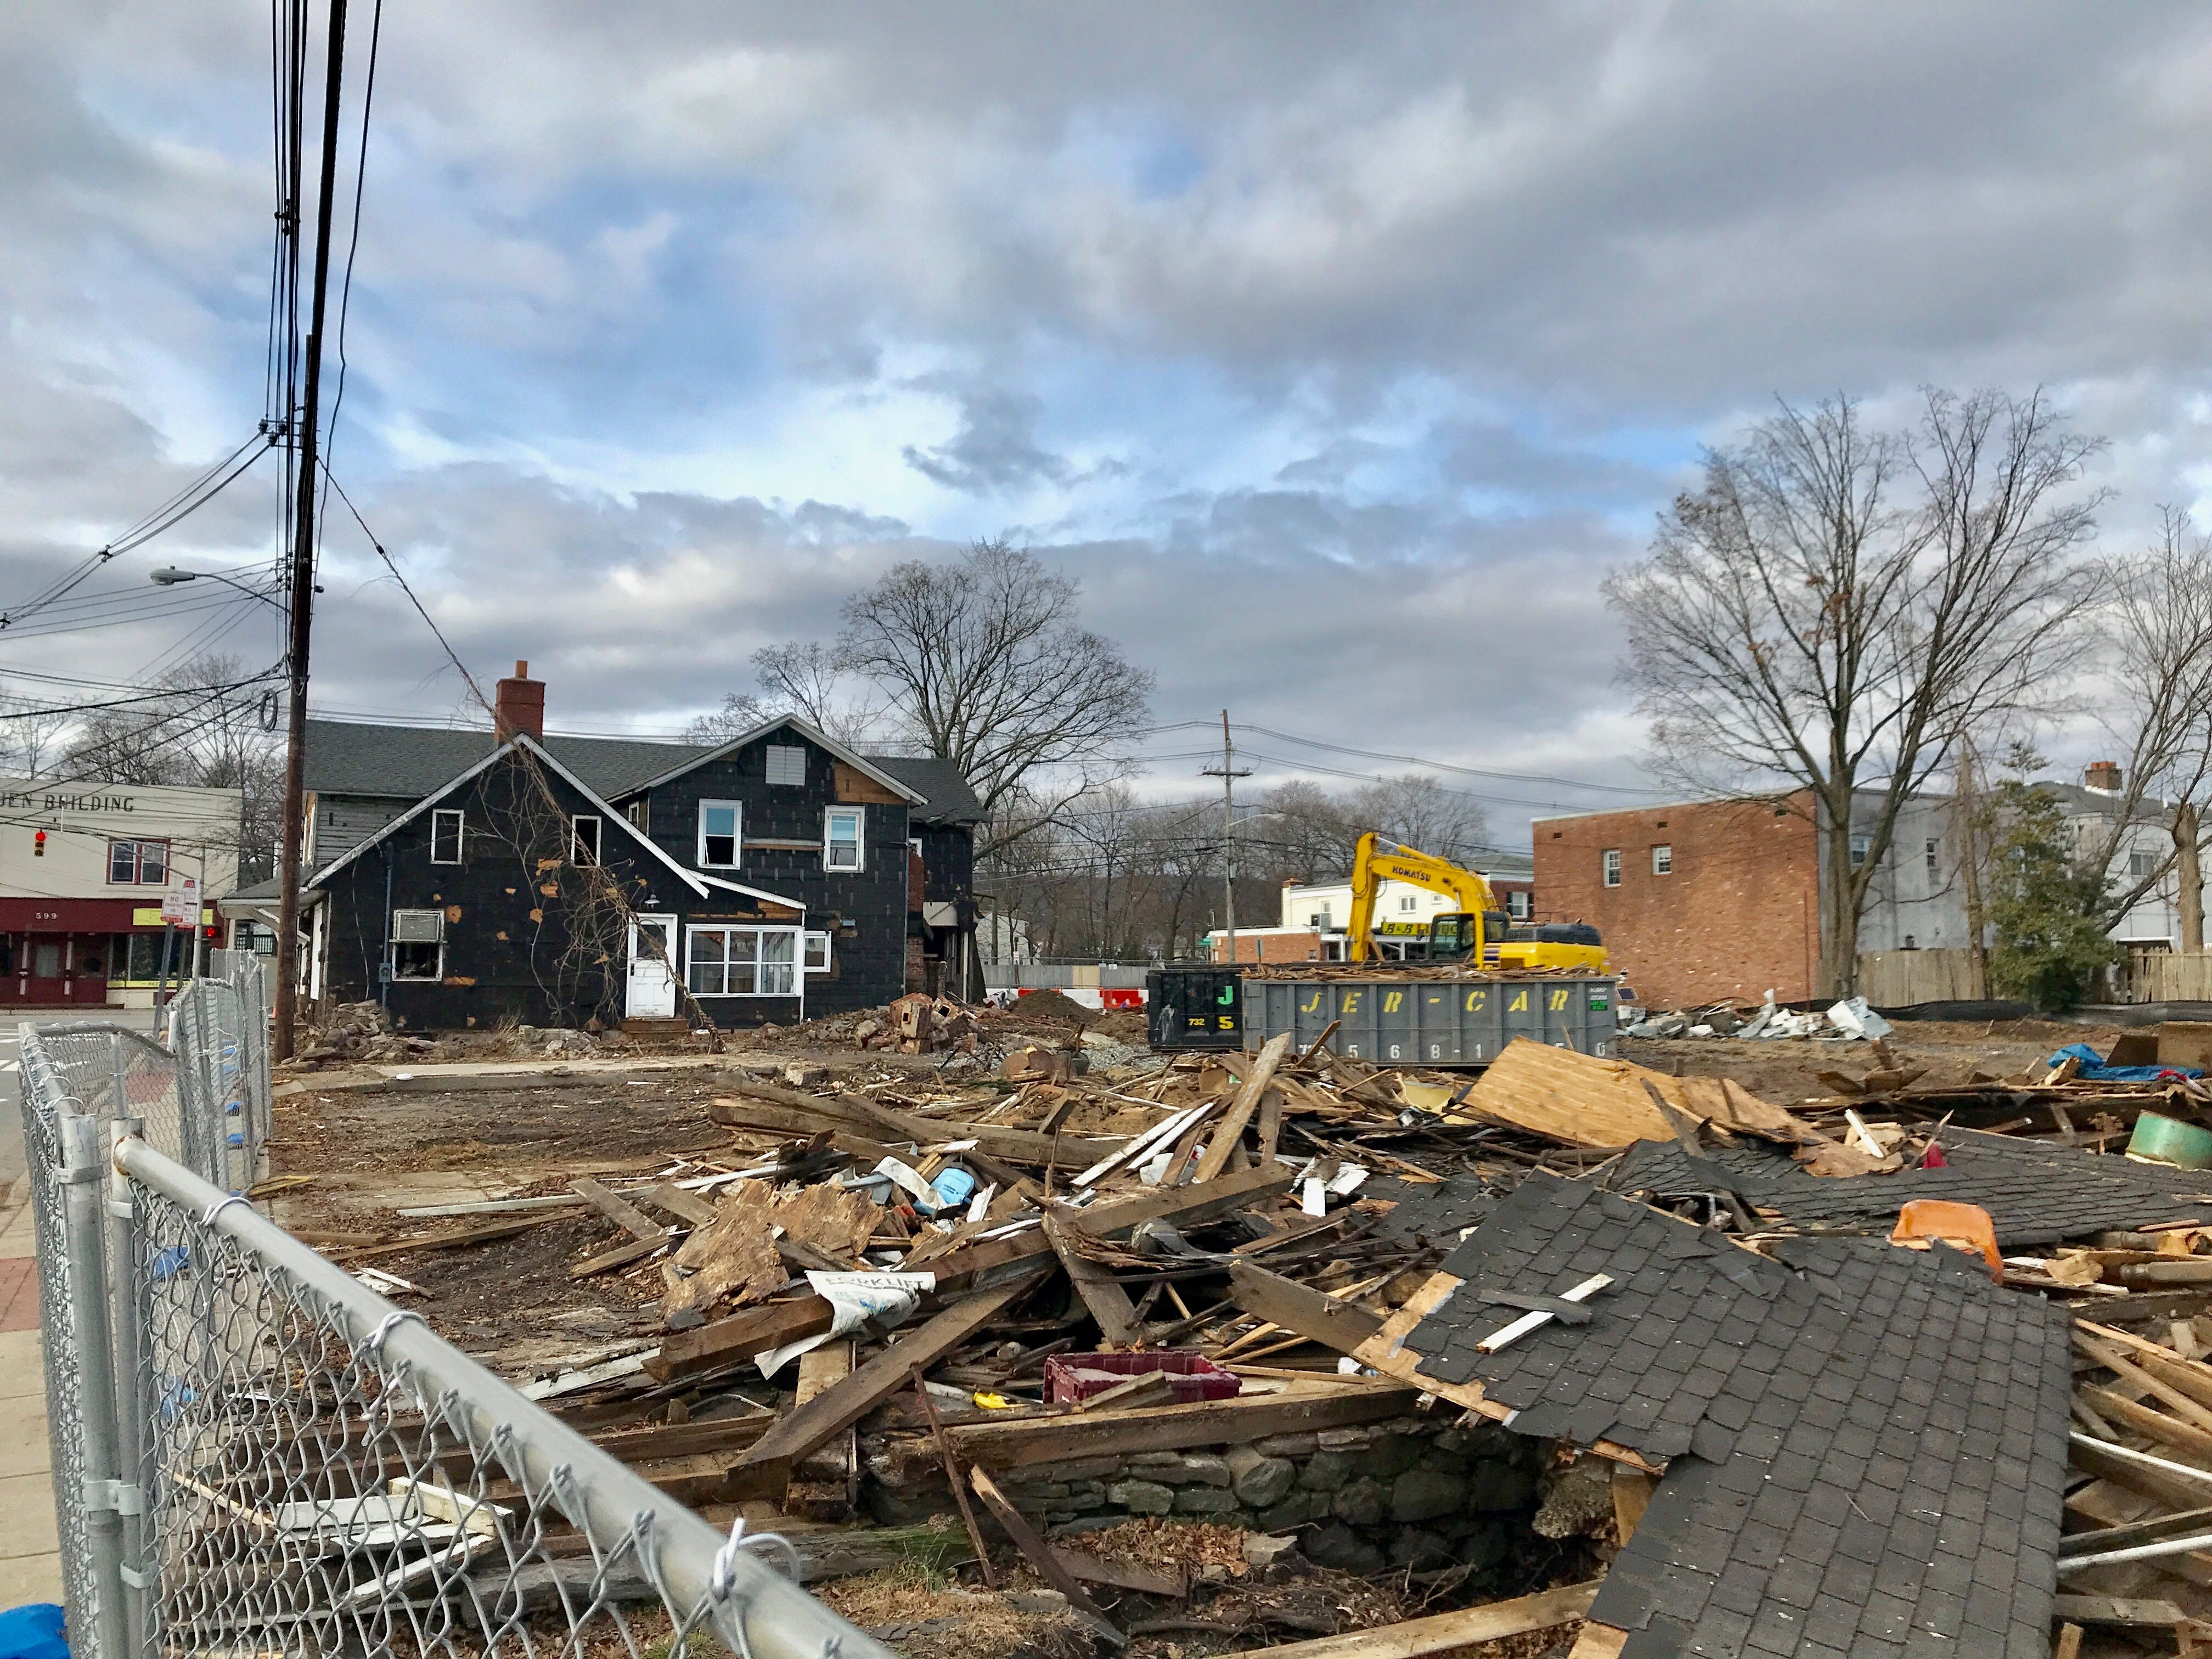 The Jones' Hardware site in Pequannock on Christmas Day, 2018. The building pictured was the last to be demolished days later to make way for a new Chase bank.